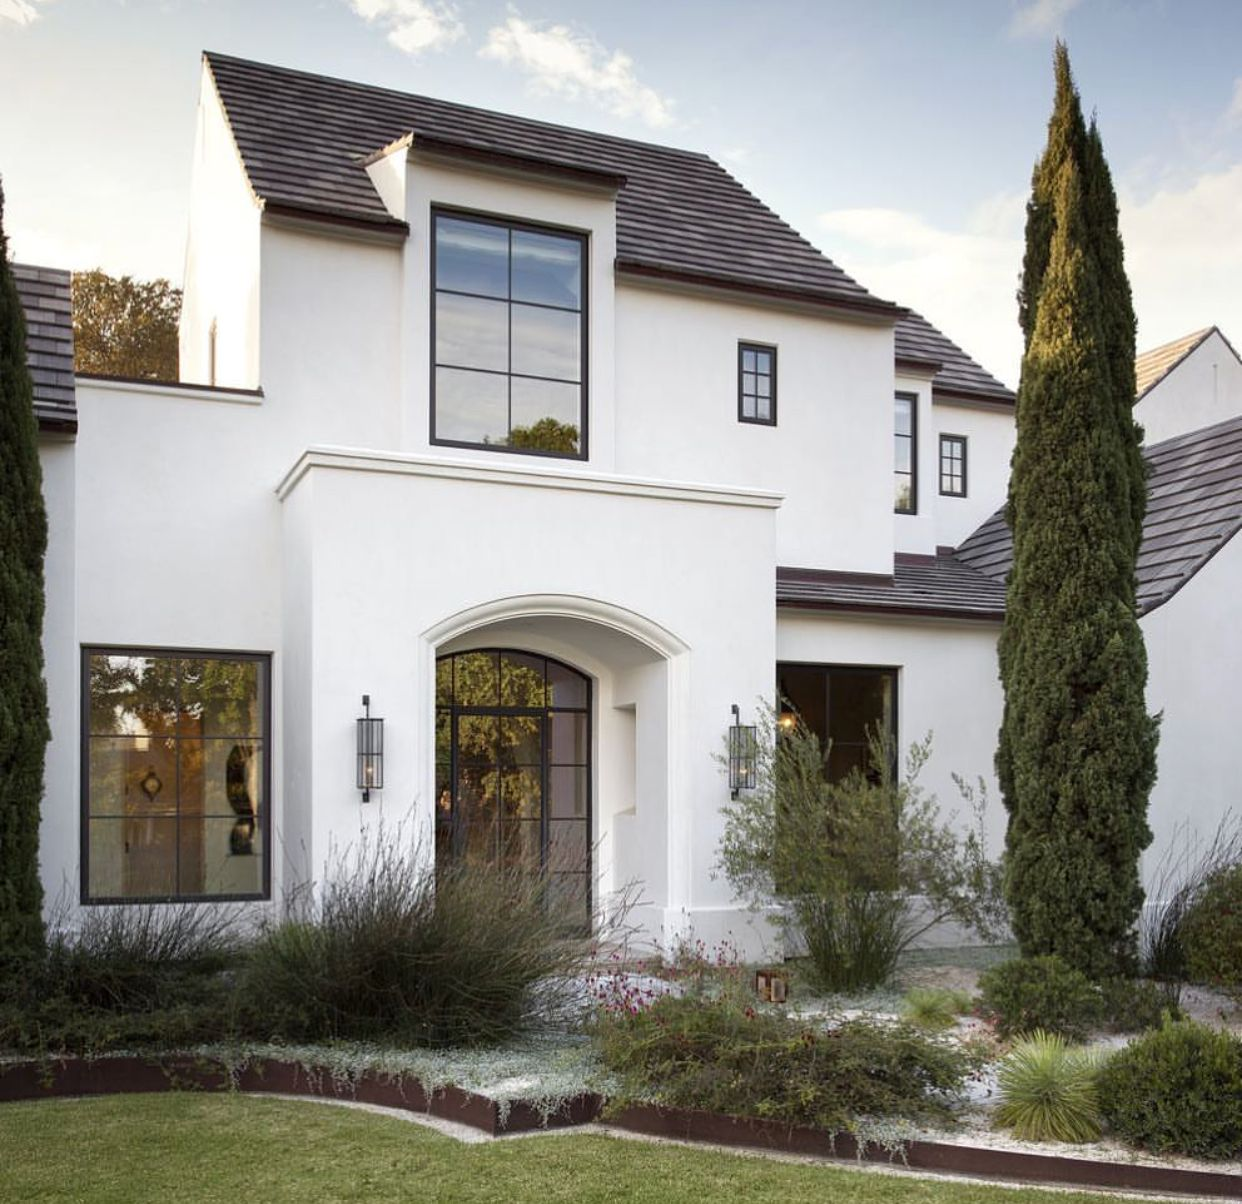 50 Best Exterior Paint Colors for Your Home | Exterior paint colors ...